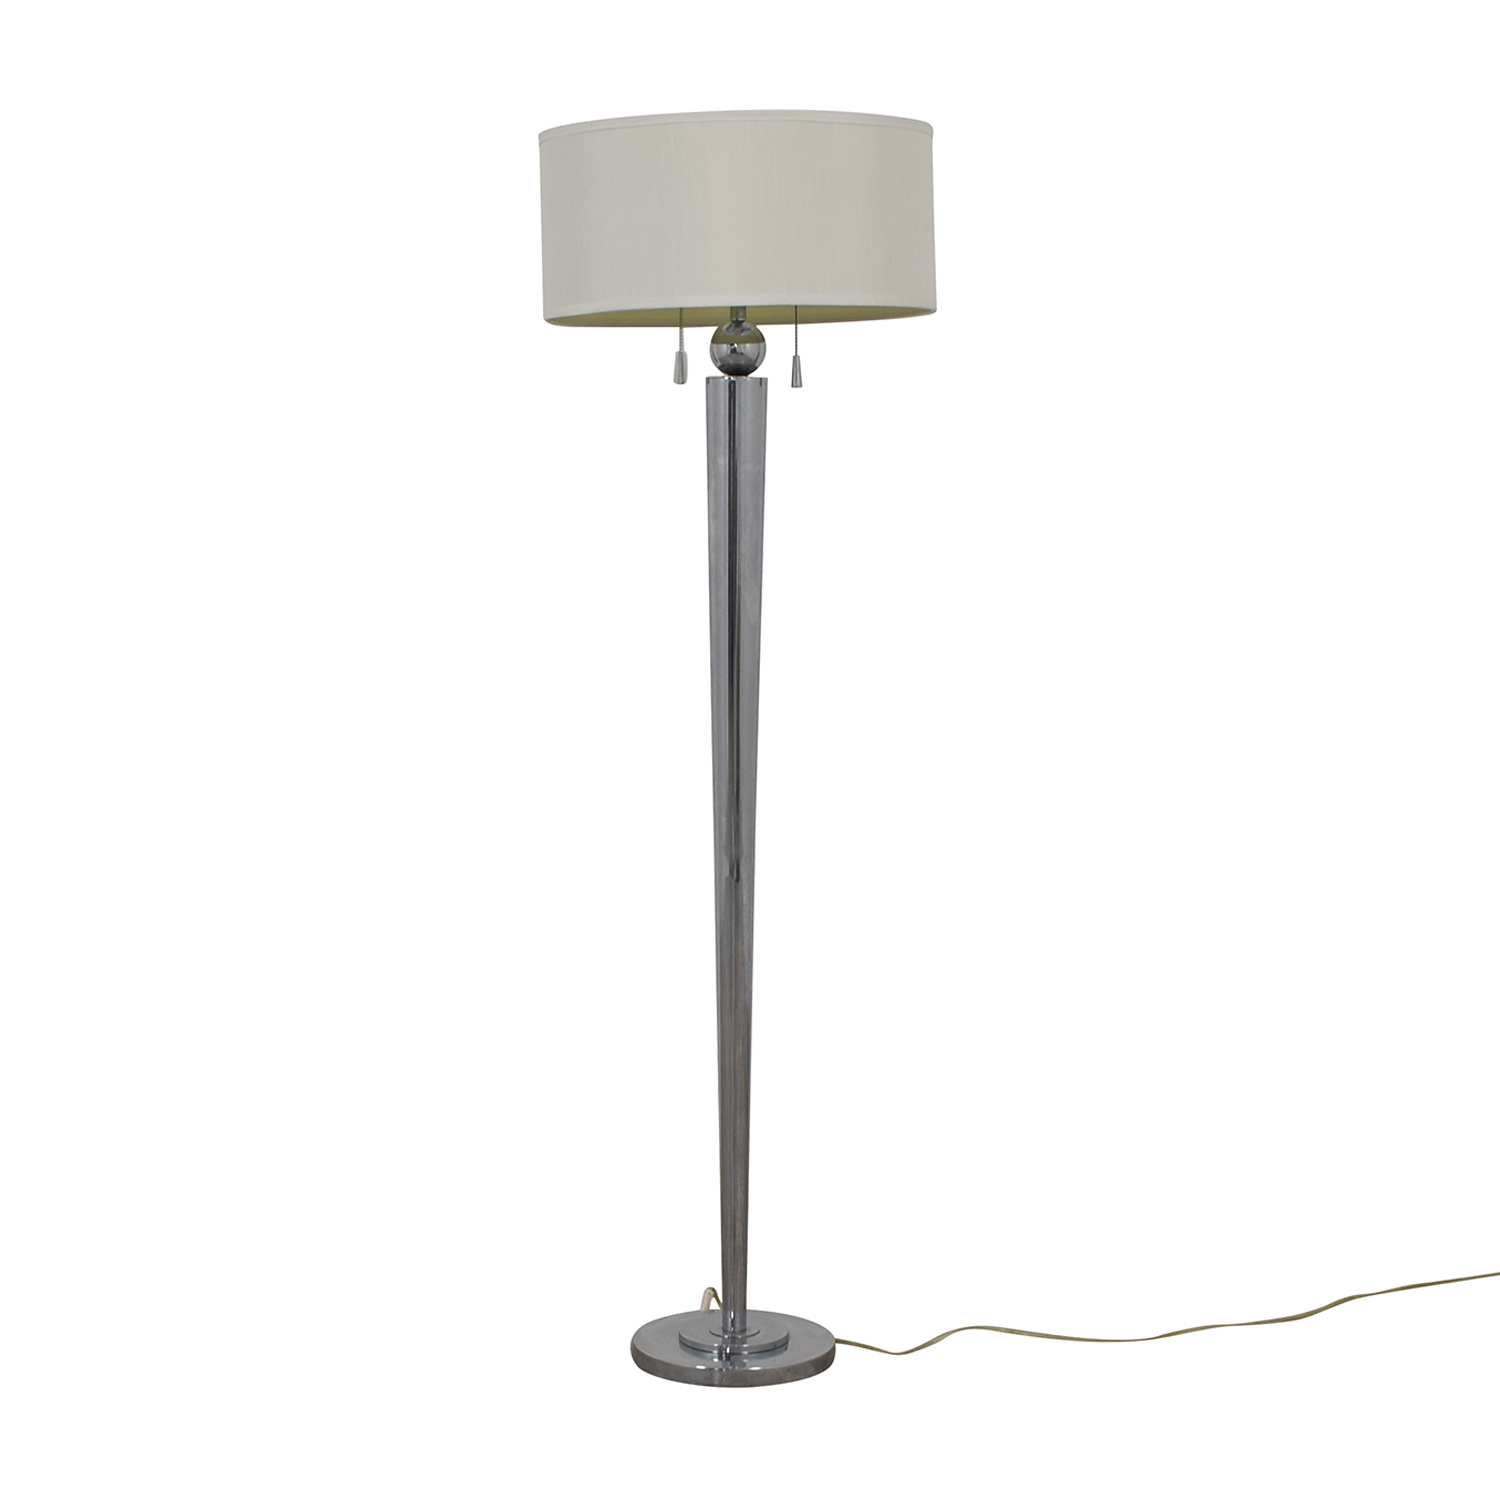 Chrome Floor Lamp price